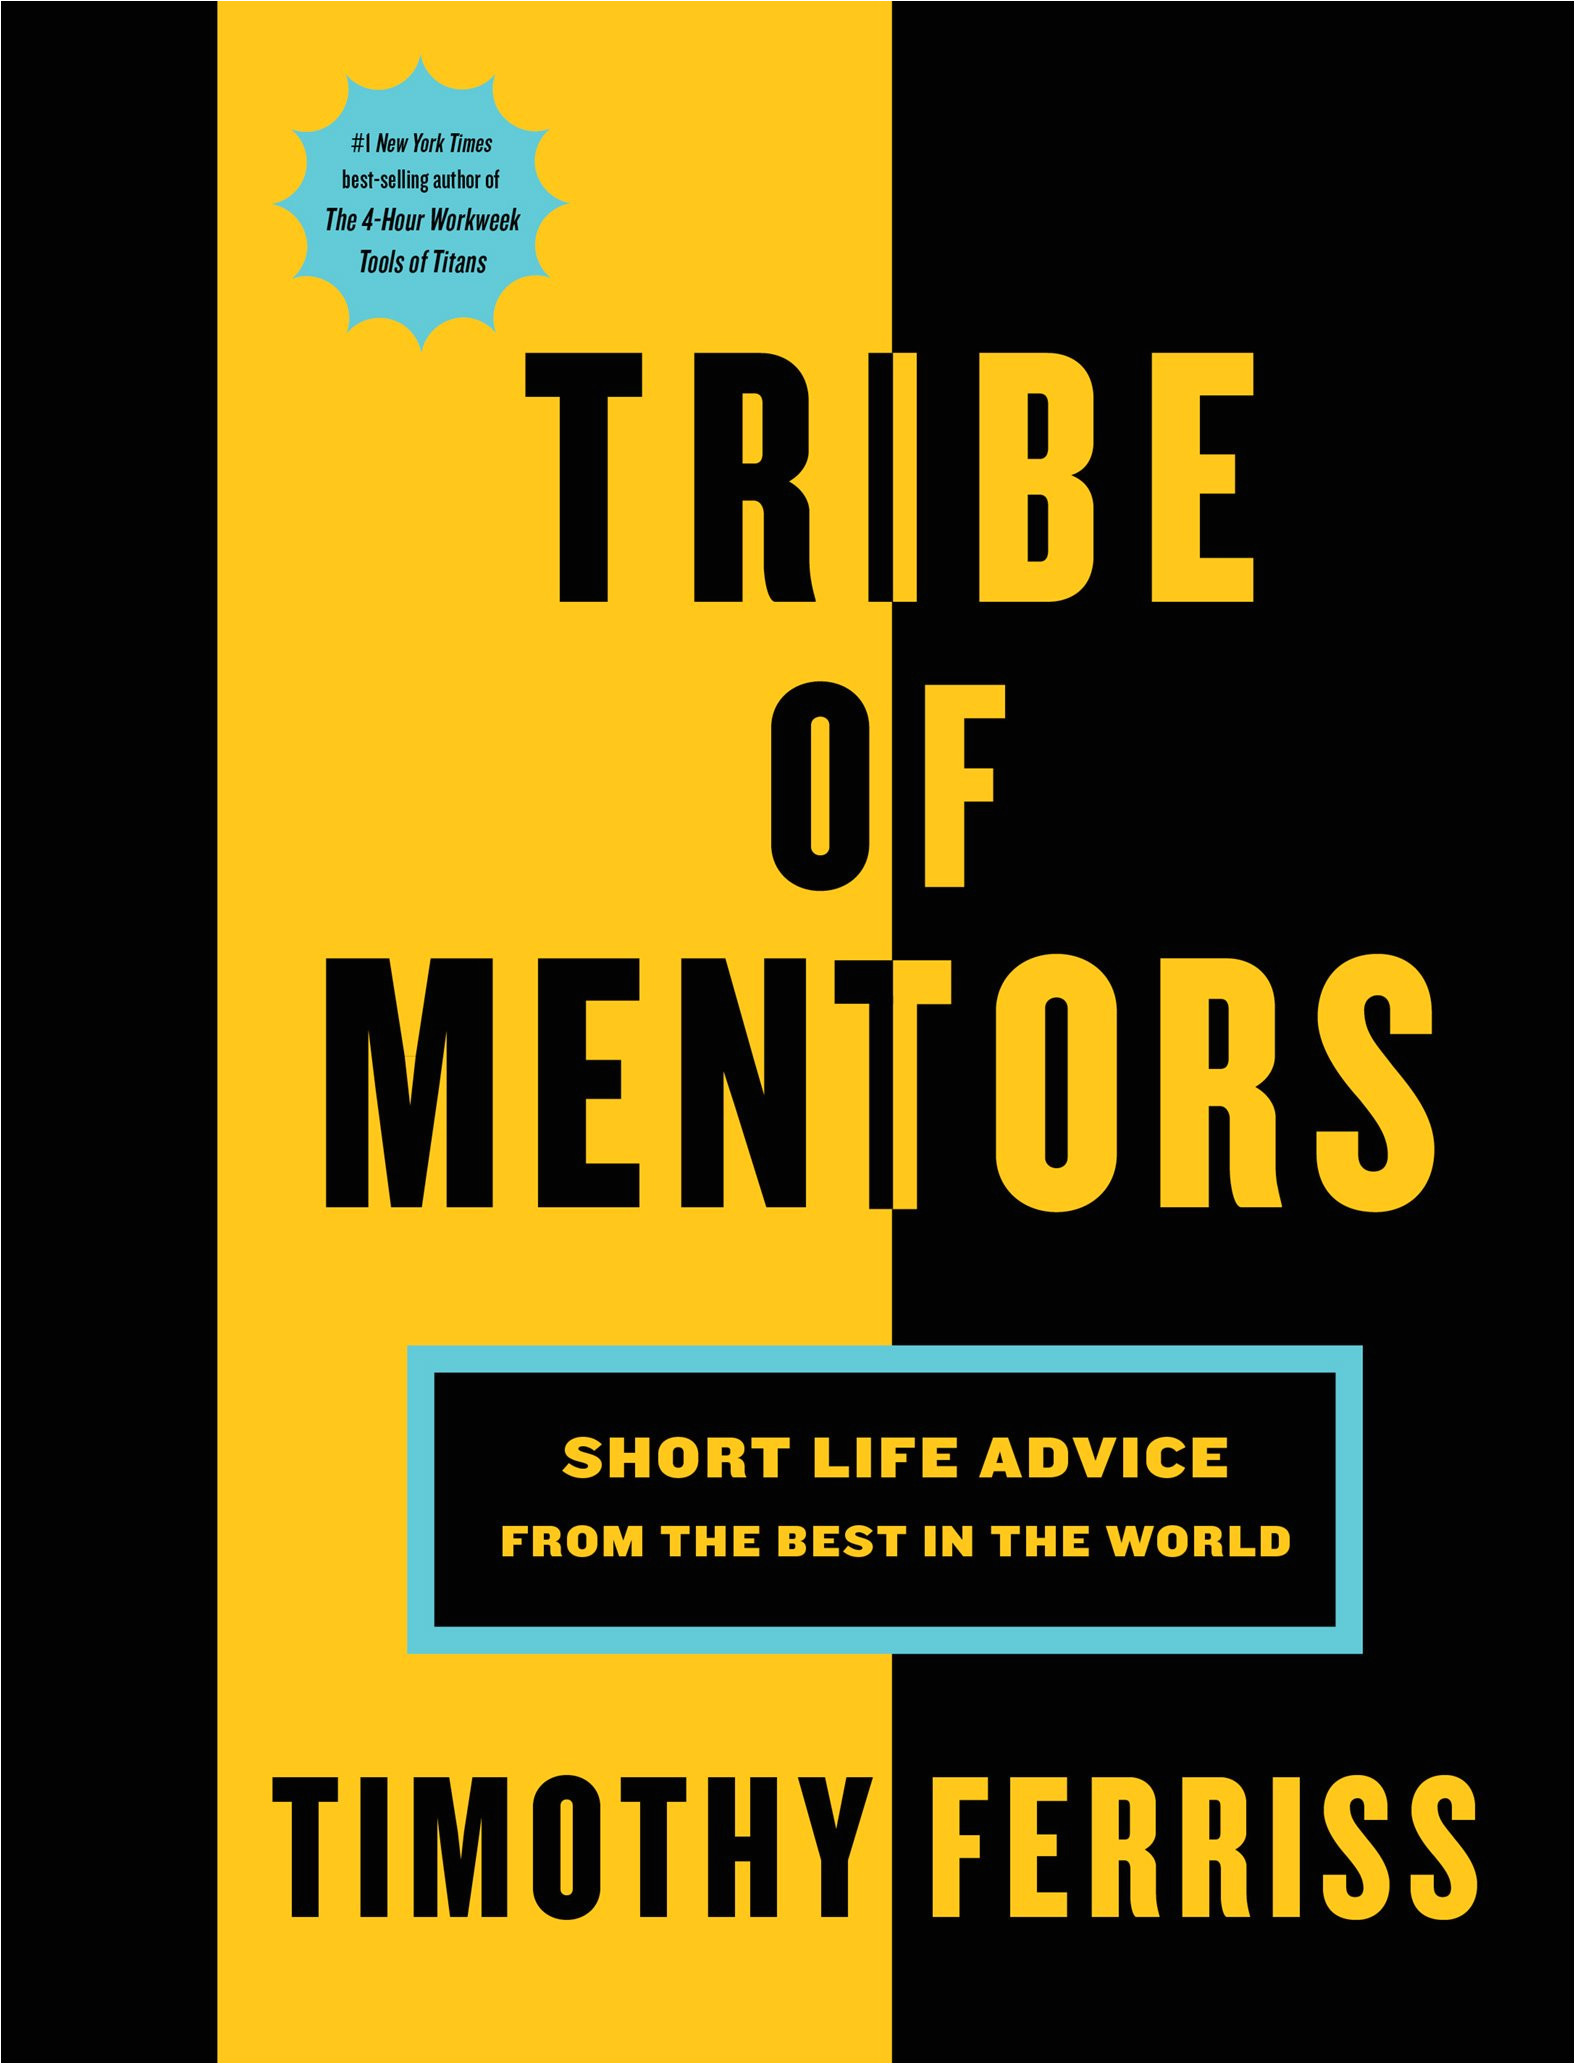 tribe of mentors short life advice from the best in the world tim ferriss 9781328994967 amazon com books